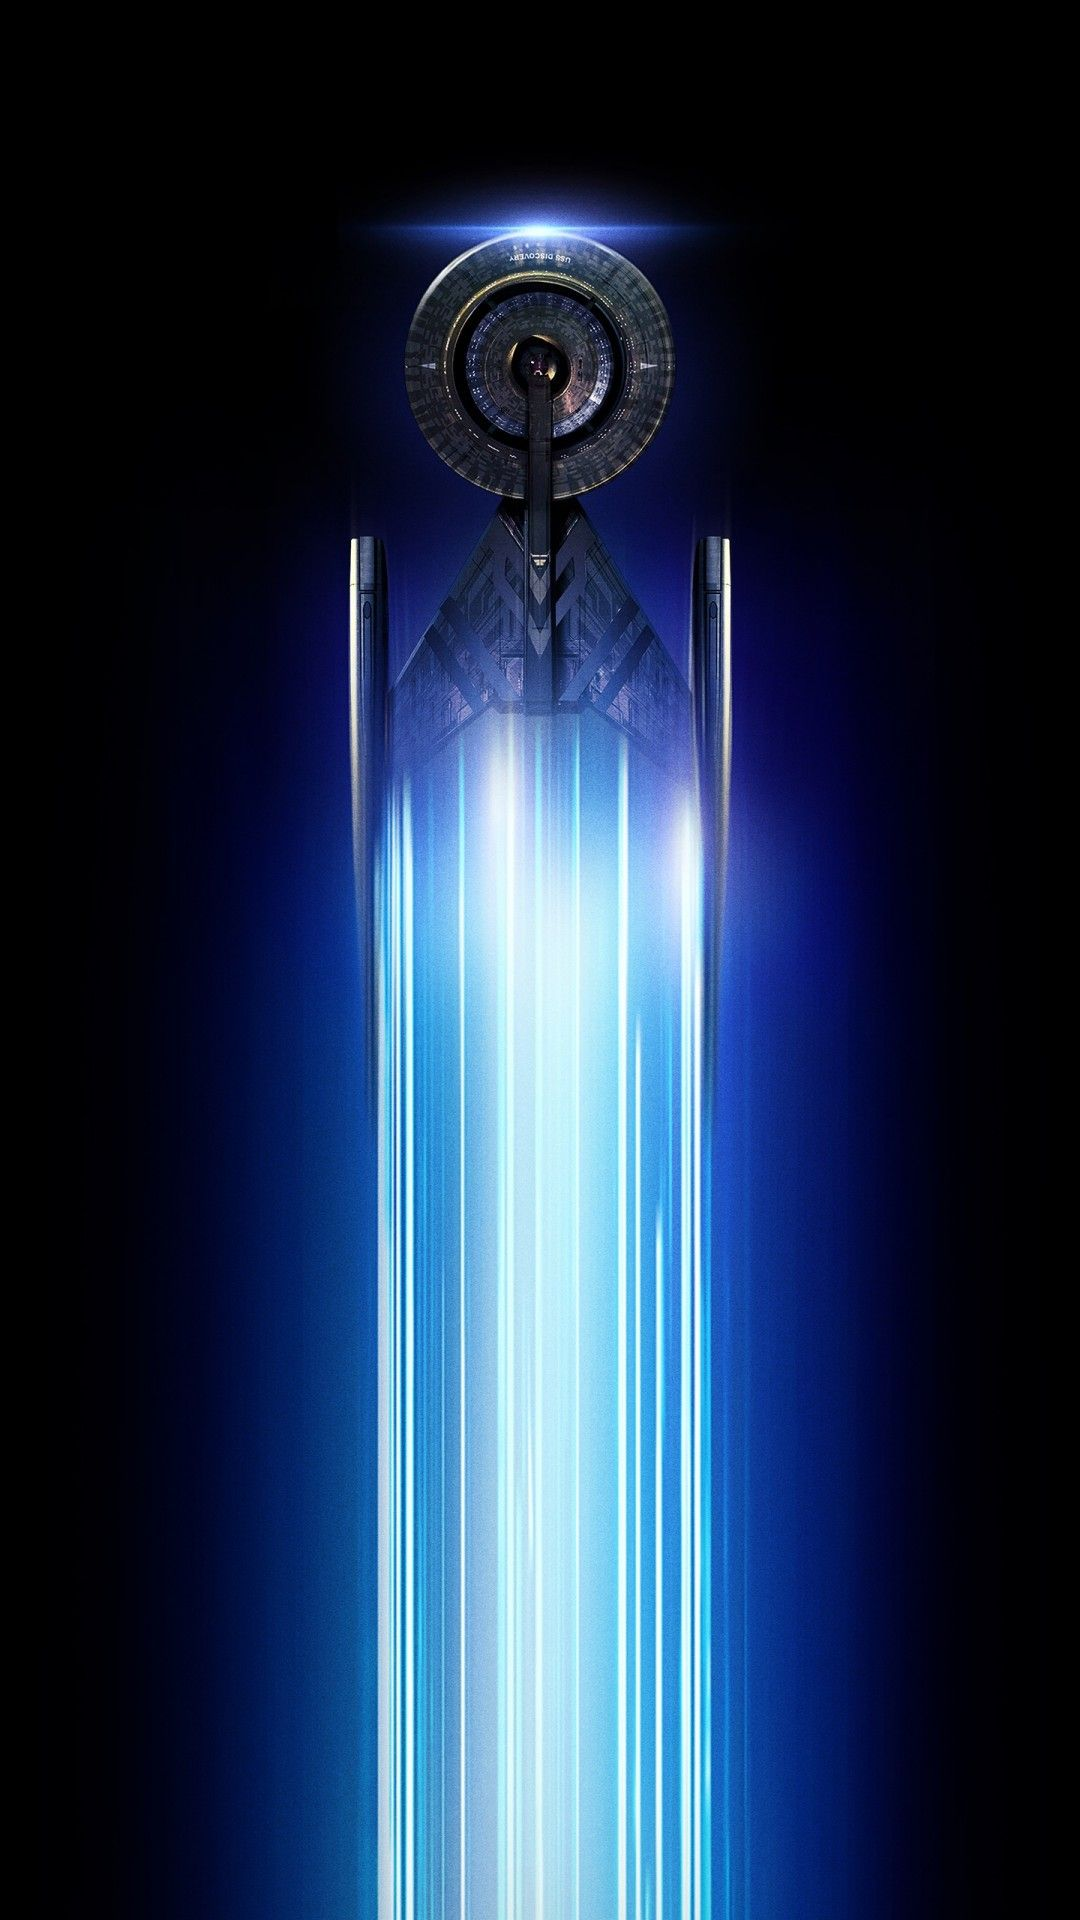 1080x1920 Star Trek | Set #1 | HD | Mobile Wallpaper | 7 Images | 1080x1920 ...